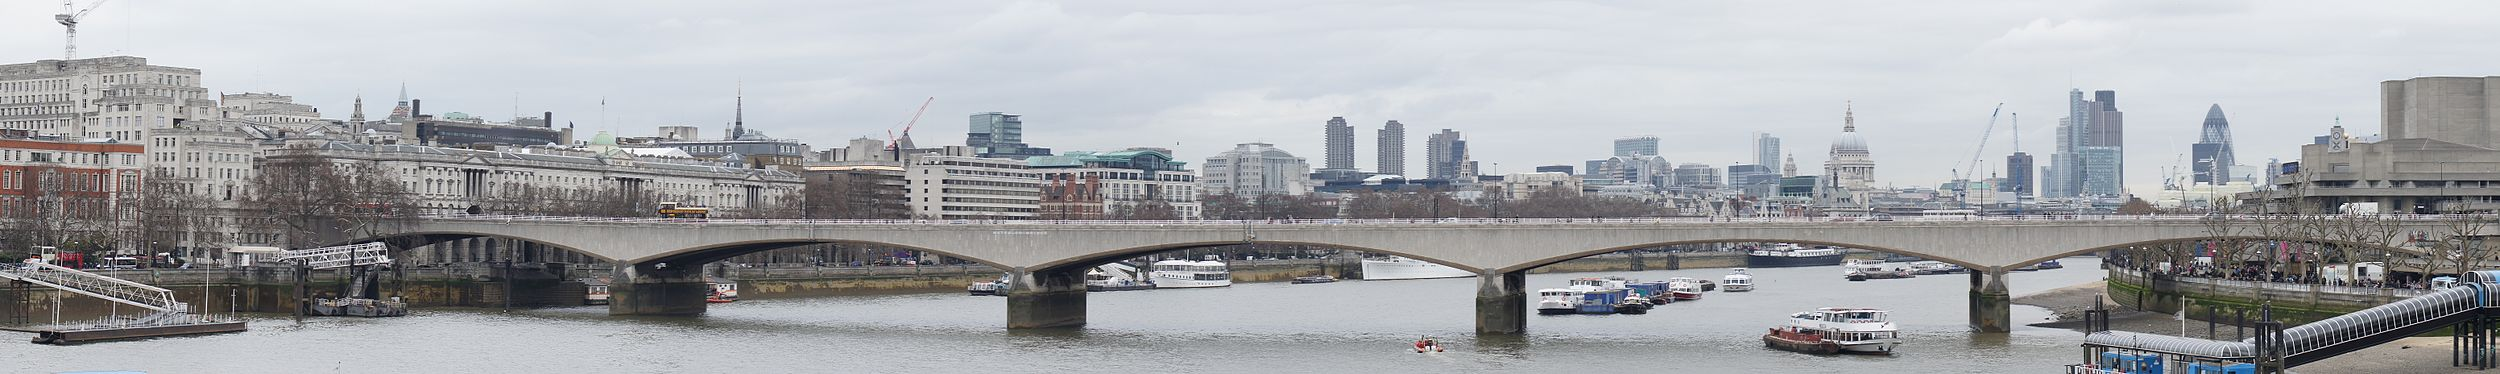 Waterloo Bridge Panorama.jpg